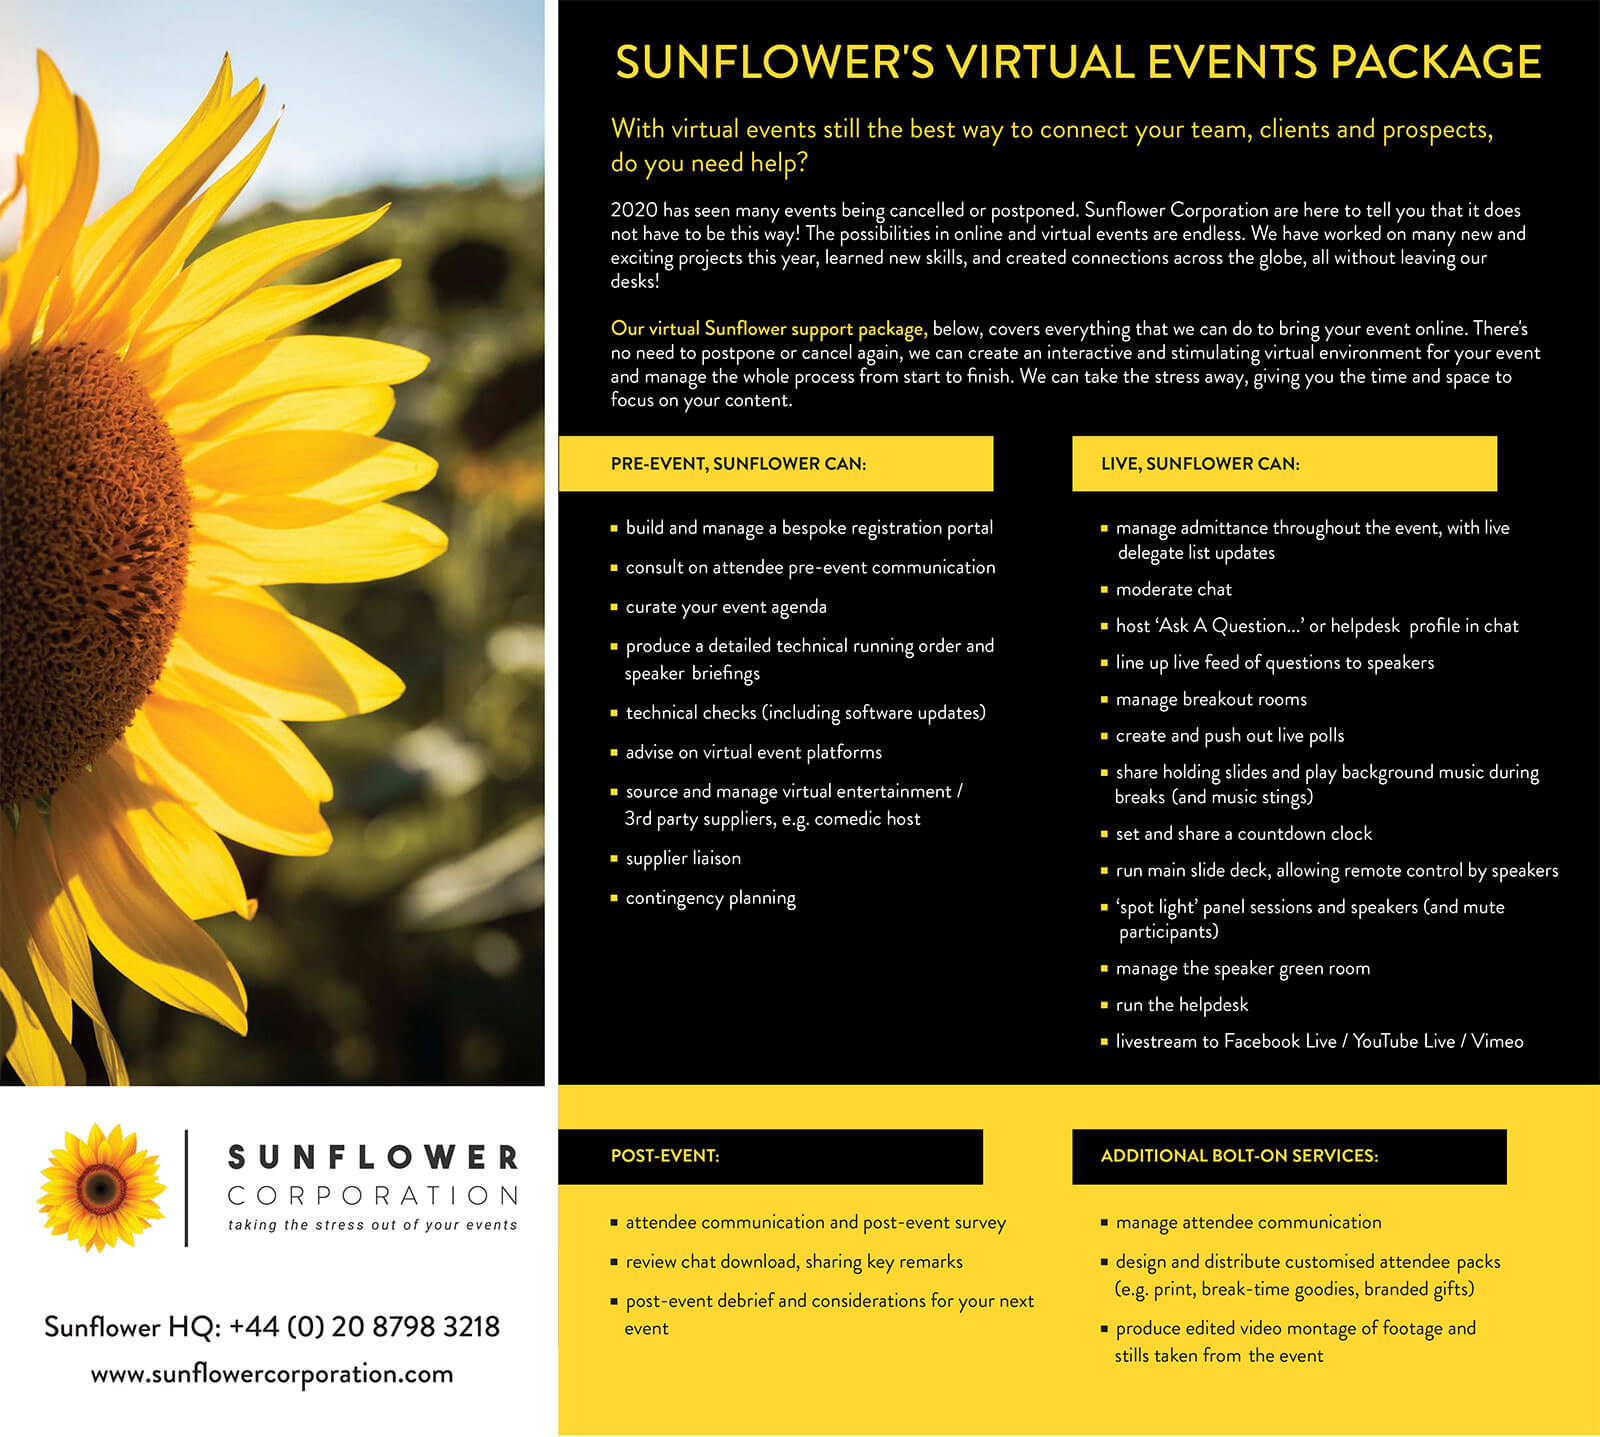 Sunflowers-Virtual-Events-Package